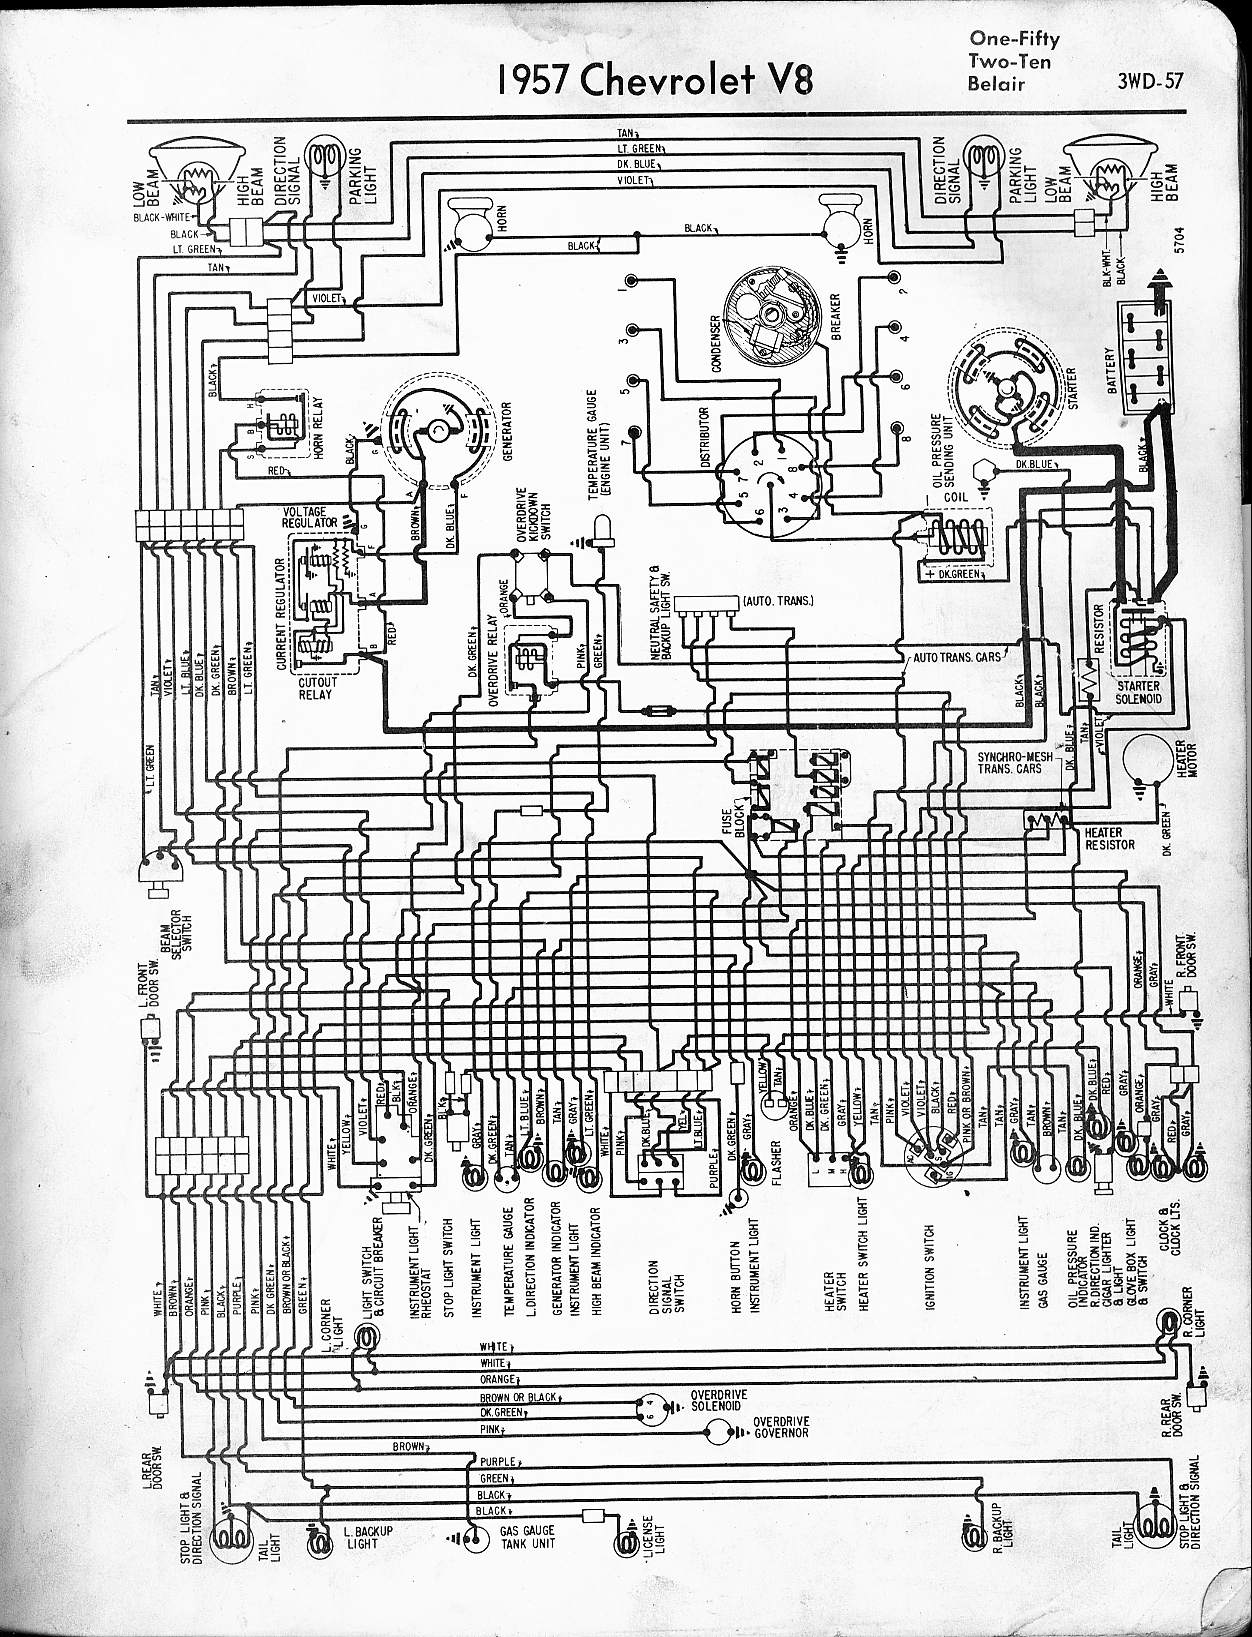 Mwirechev Wd on 1955 chevy ignition switch wiring diagram